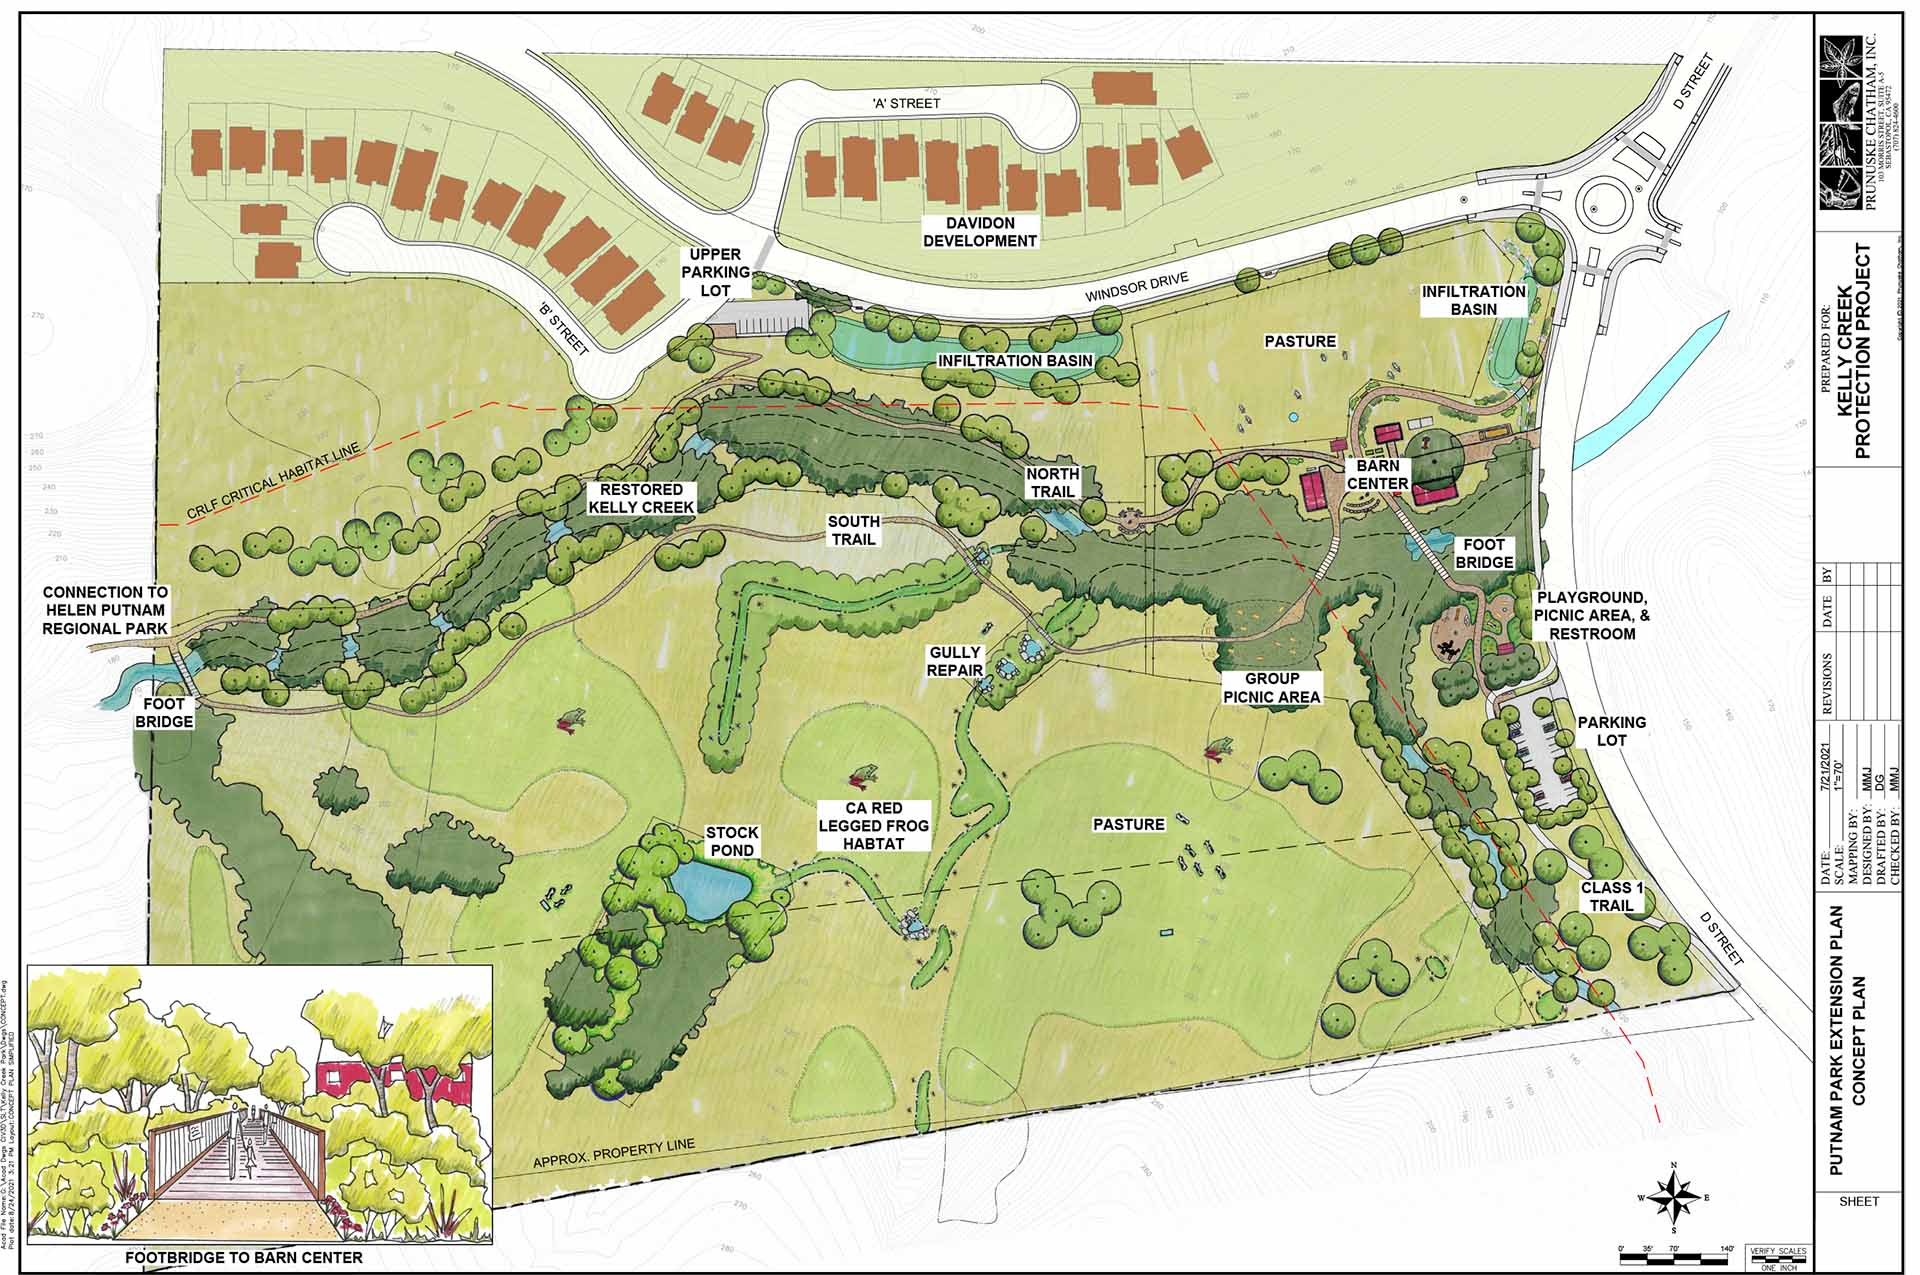 Map of proposed park extension and housing plan. Details include drawings of the proposed homes, new streets, riparian area around Kelly Creek, parking lots, and barn center. The map includes labels that show the two proposed infiltration basins, new trails, and other details.